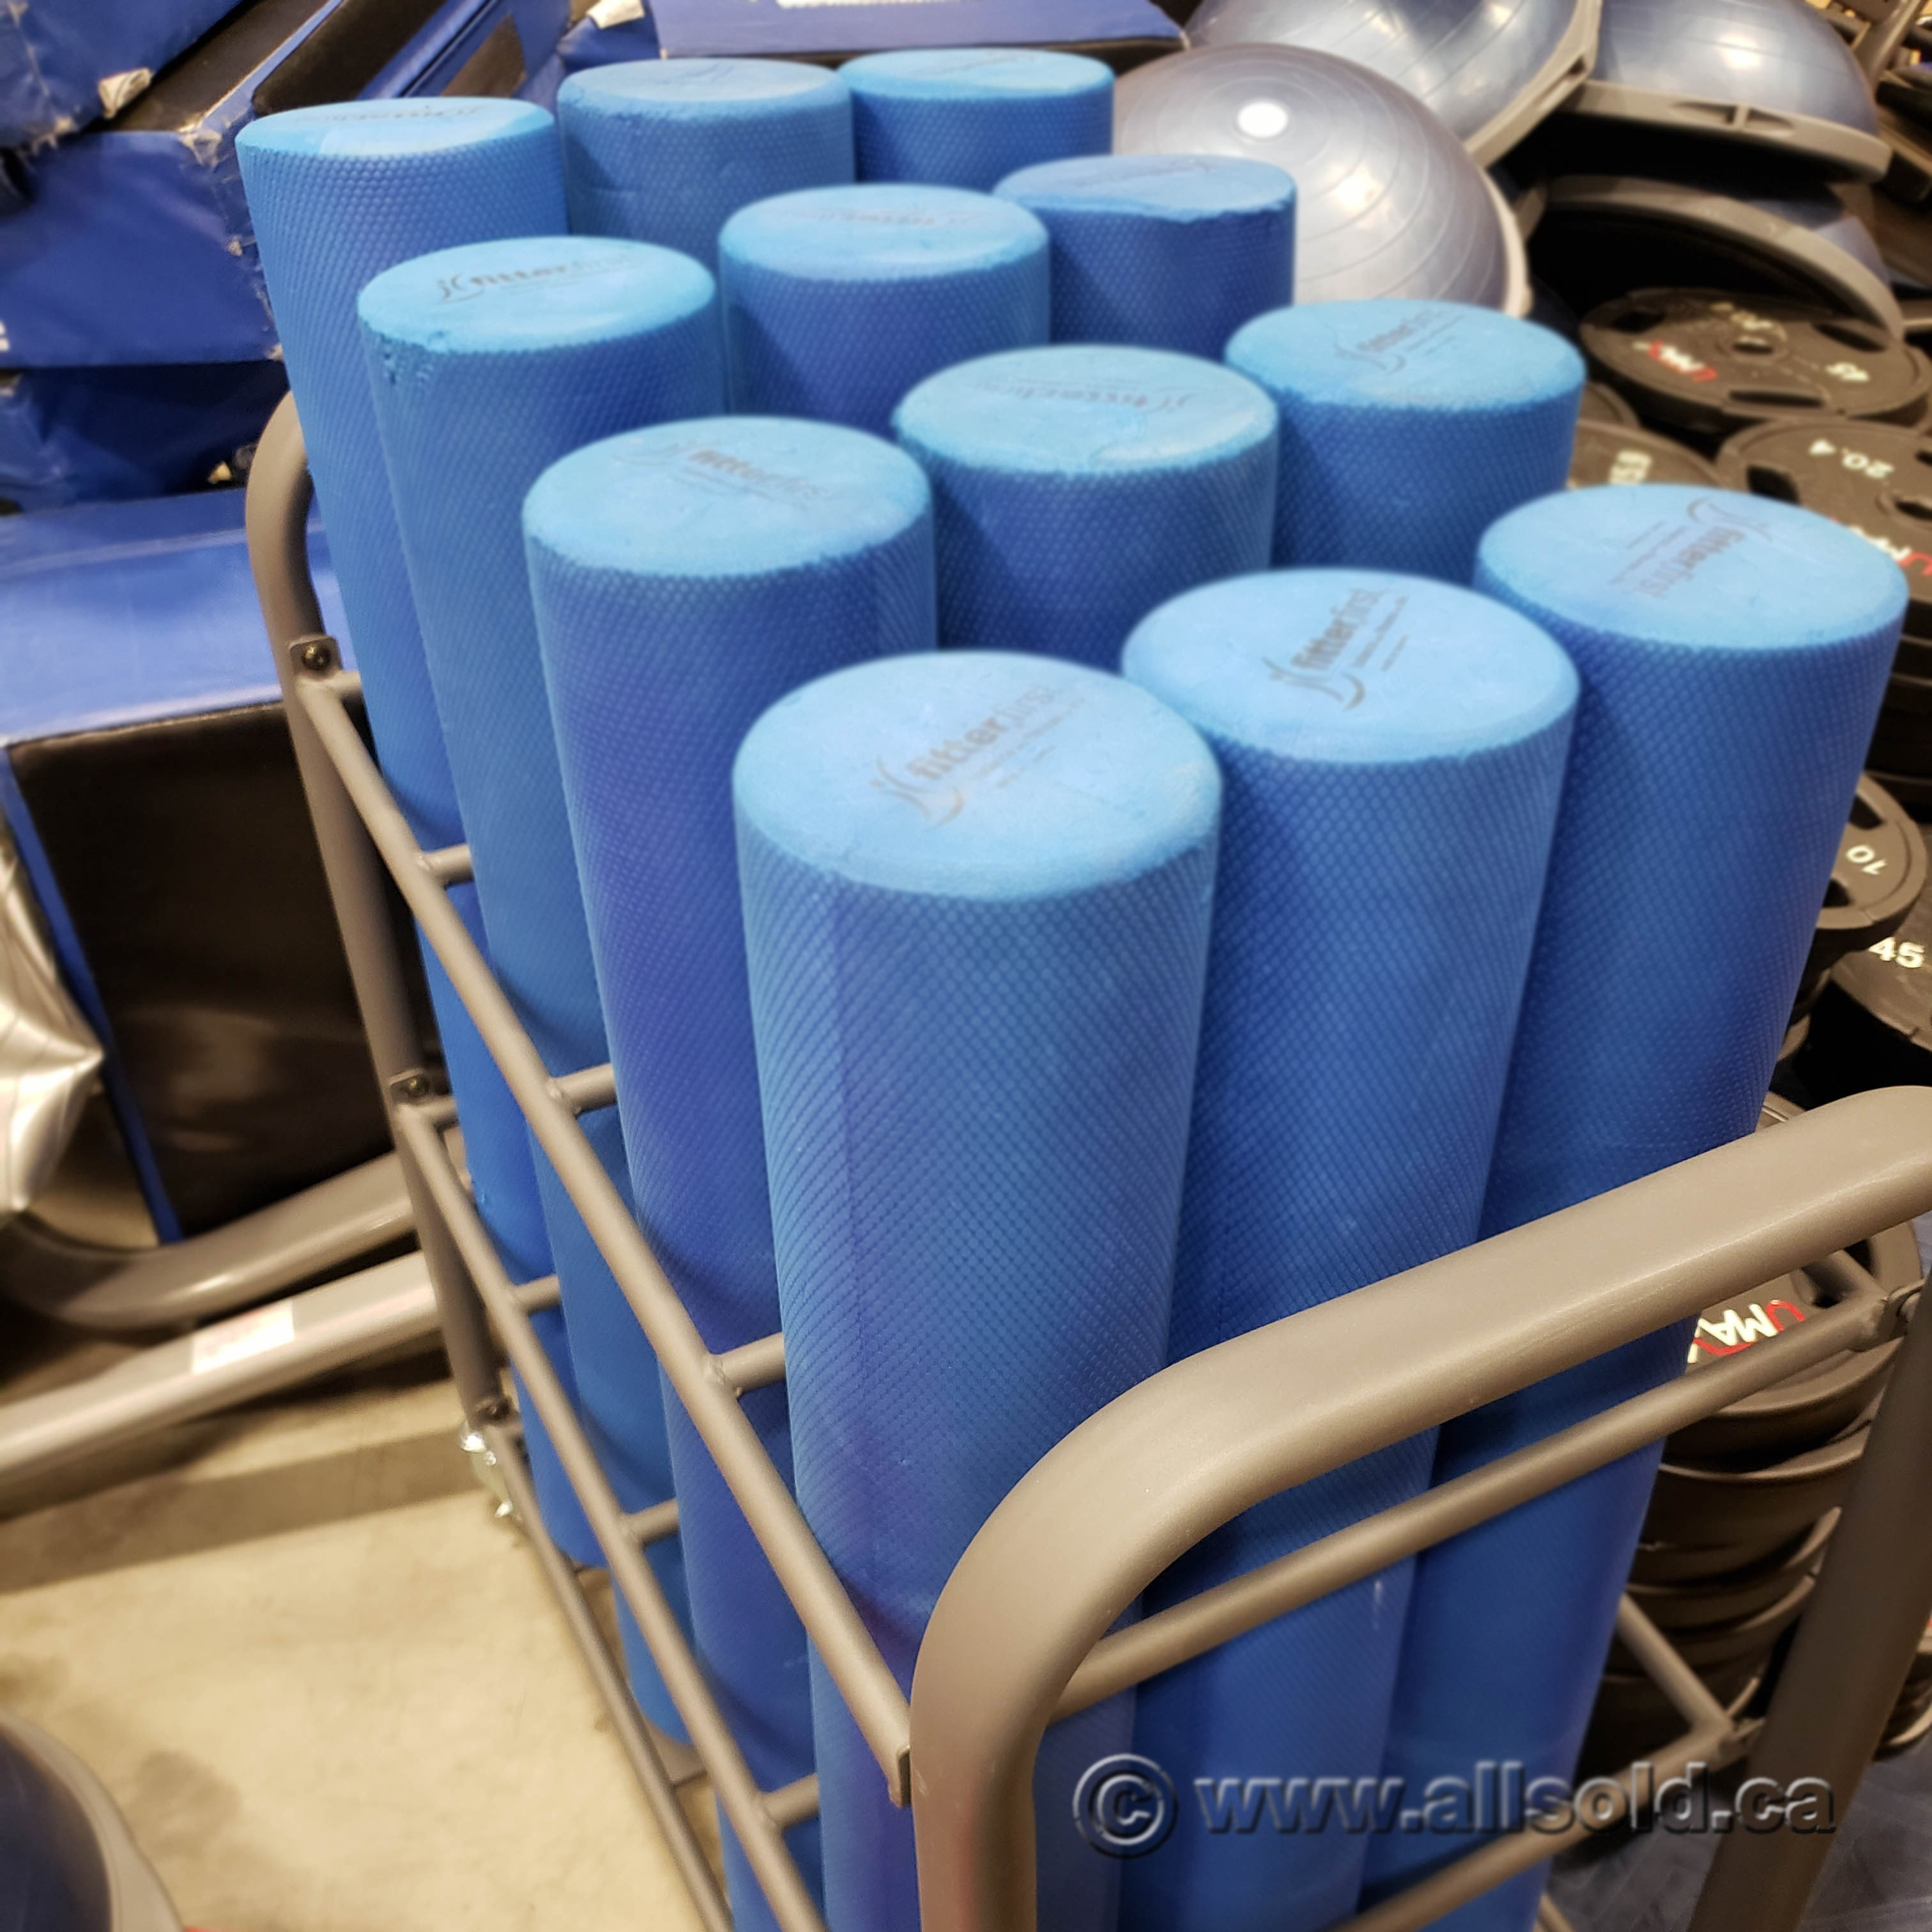 Fitterfirst Foam Roller Or Yoga Mat Storage Rack Allsold Ca Buy Sell Used Office Furniture Calgary